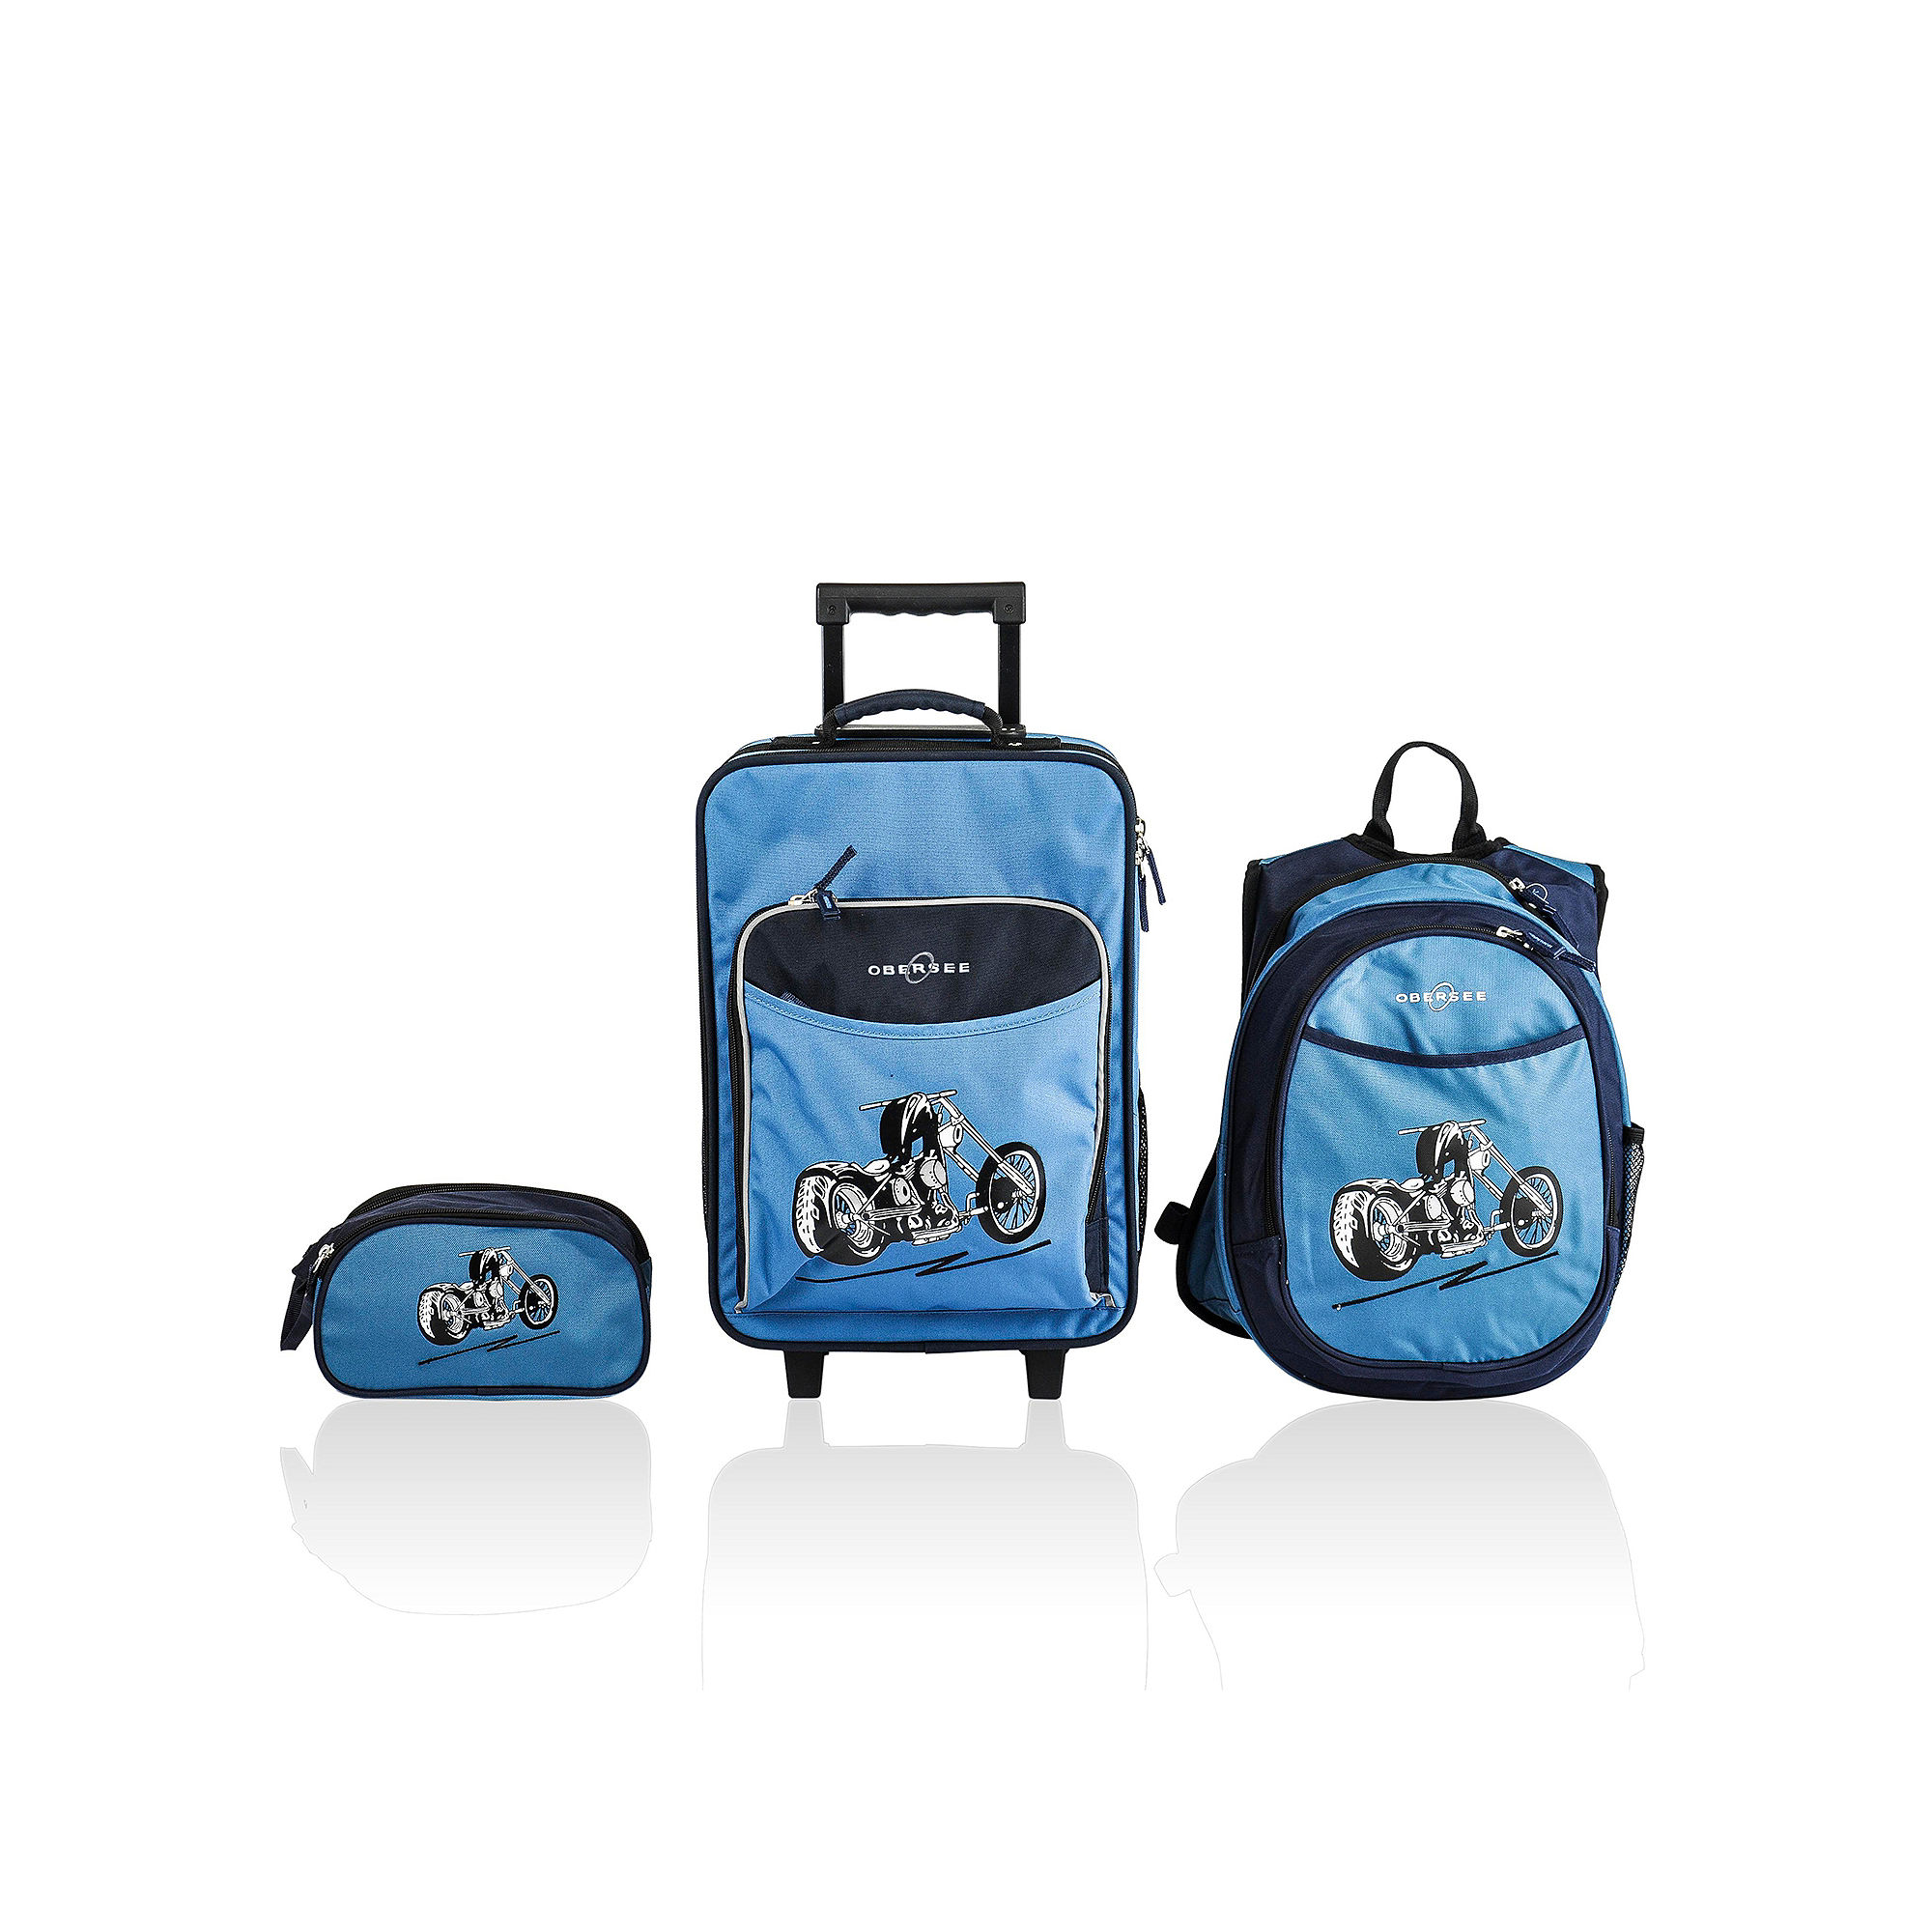 Obersee Little Kids 3-pc. Motorcycle Luggage,  Backpack & Toiletry Bag Set